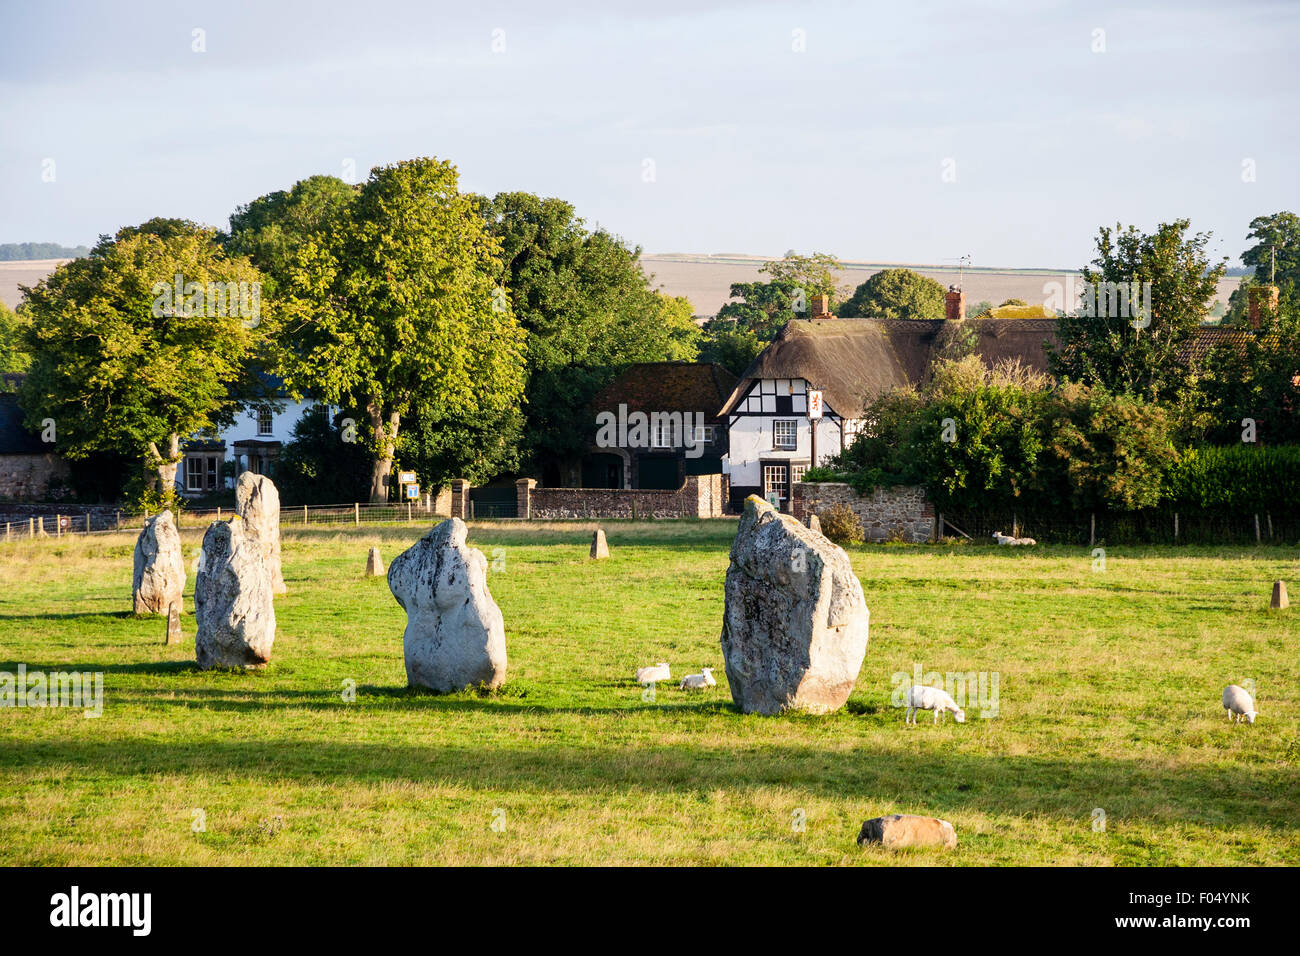 Avebury stone circle, Southern inner circle, curved row of stones, early morning, long shadows, clouds in sky - Stock Image